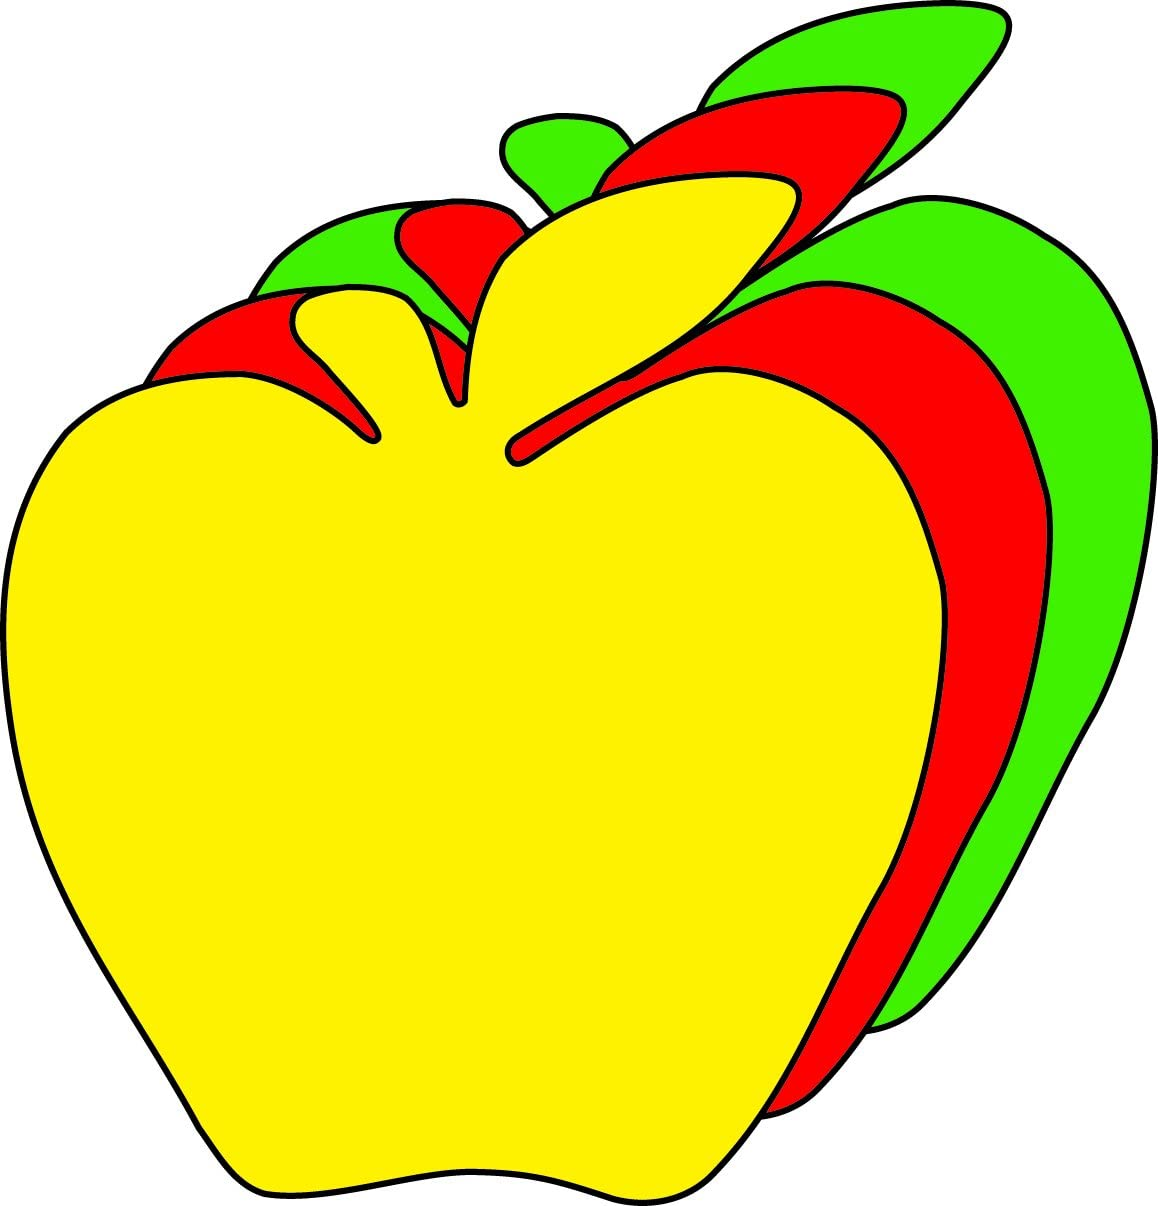 """3"""" Apple Tri-Color Creative Cut-Outs, 31 Cut-Outs in a Pack for Fall Projects, Decorations, Learning Games, Classroom, Kids' School Craft Projects"""